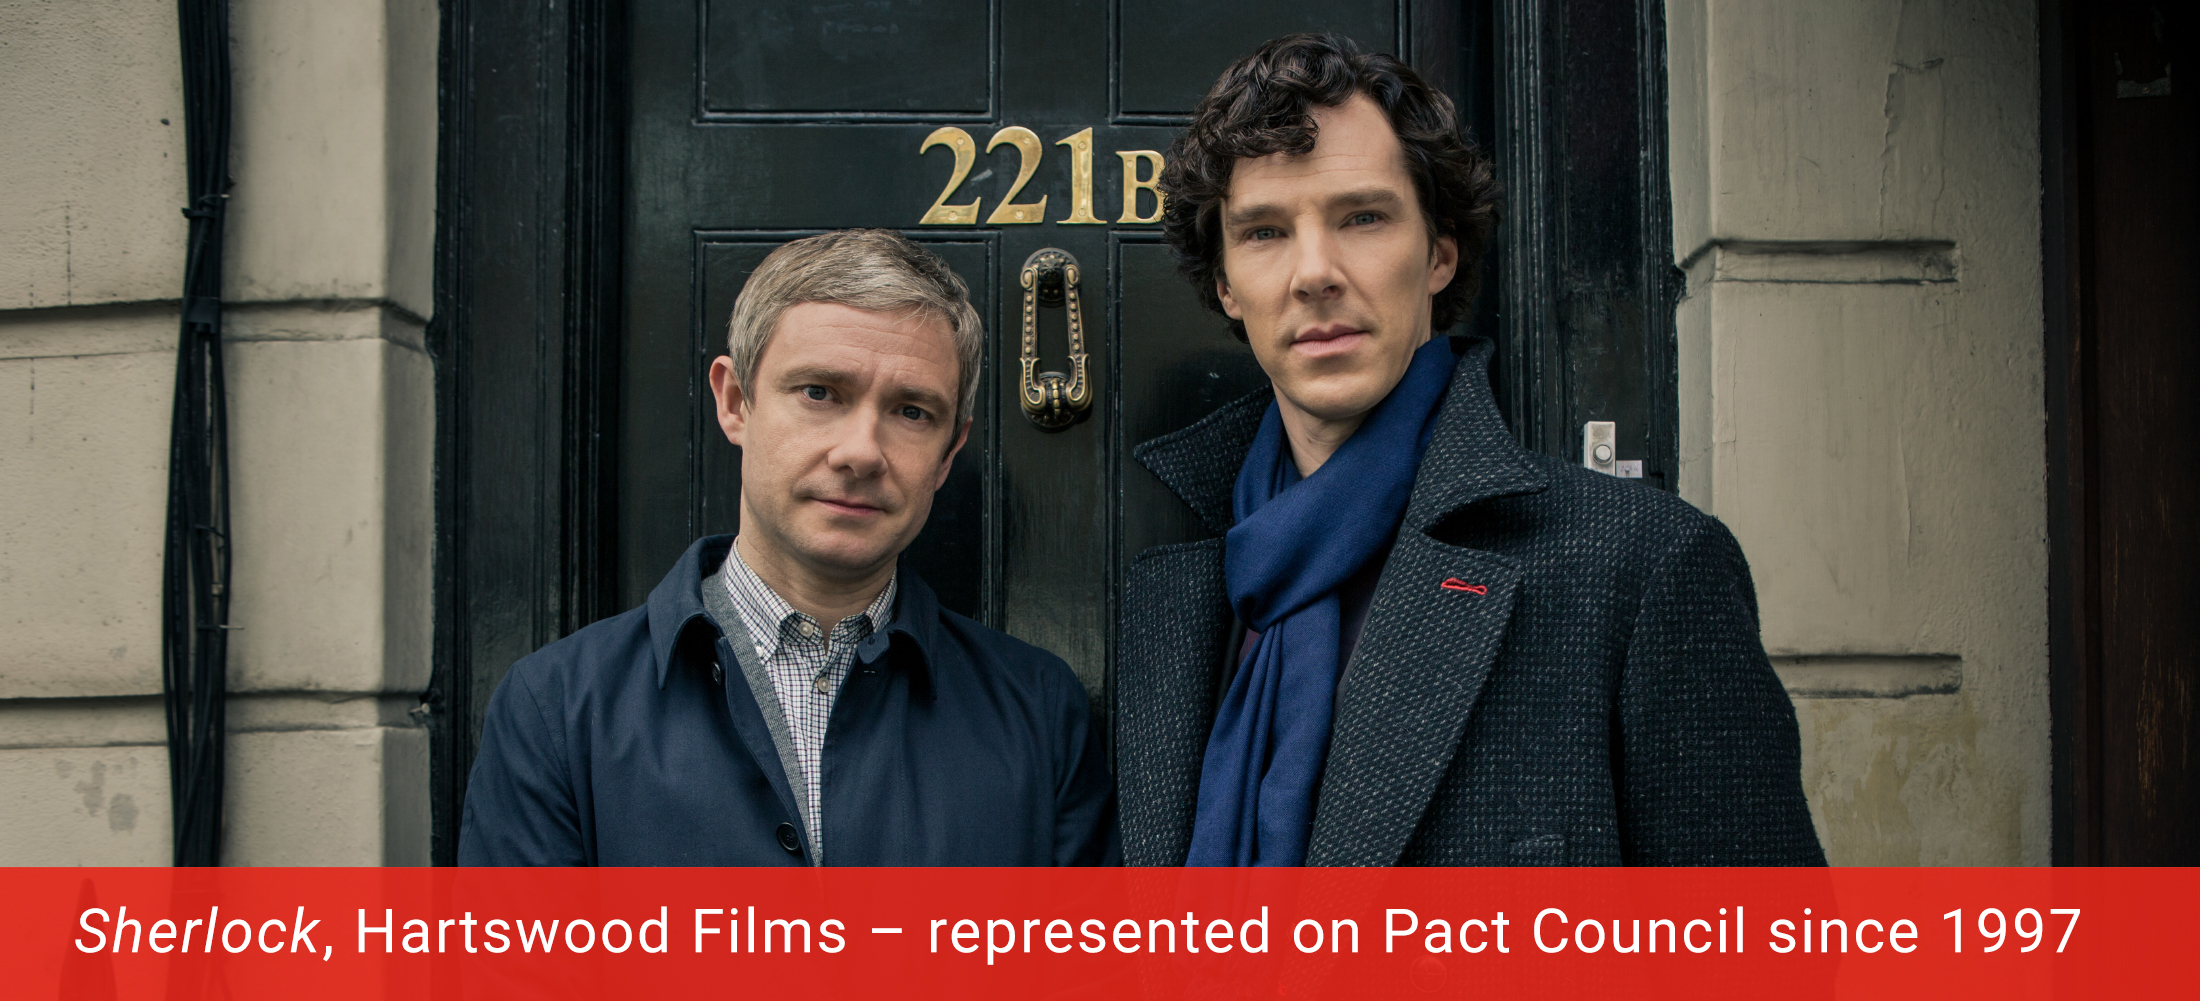 Programme image: Sherlock produced by Pact Member Hartswood Films